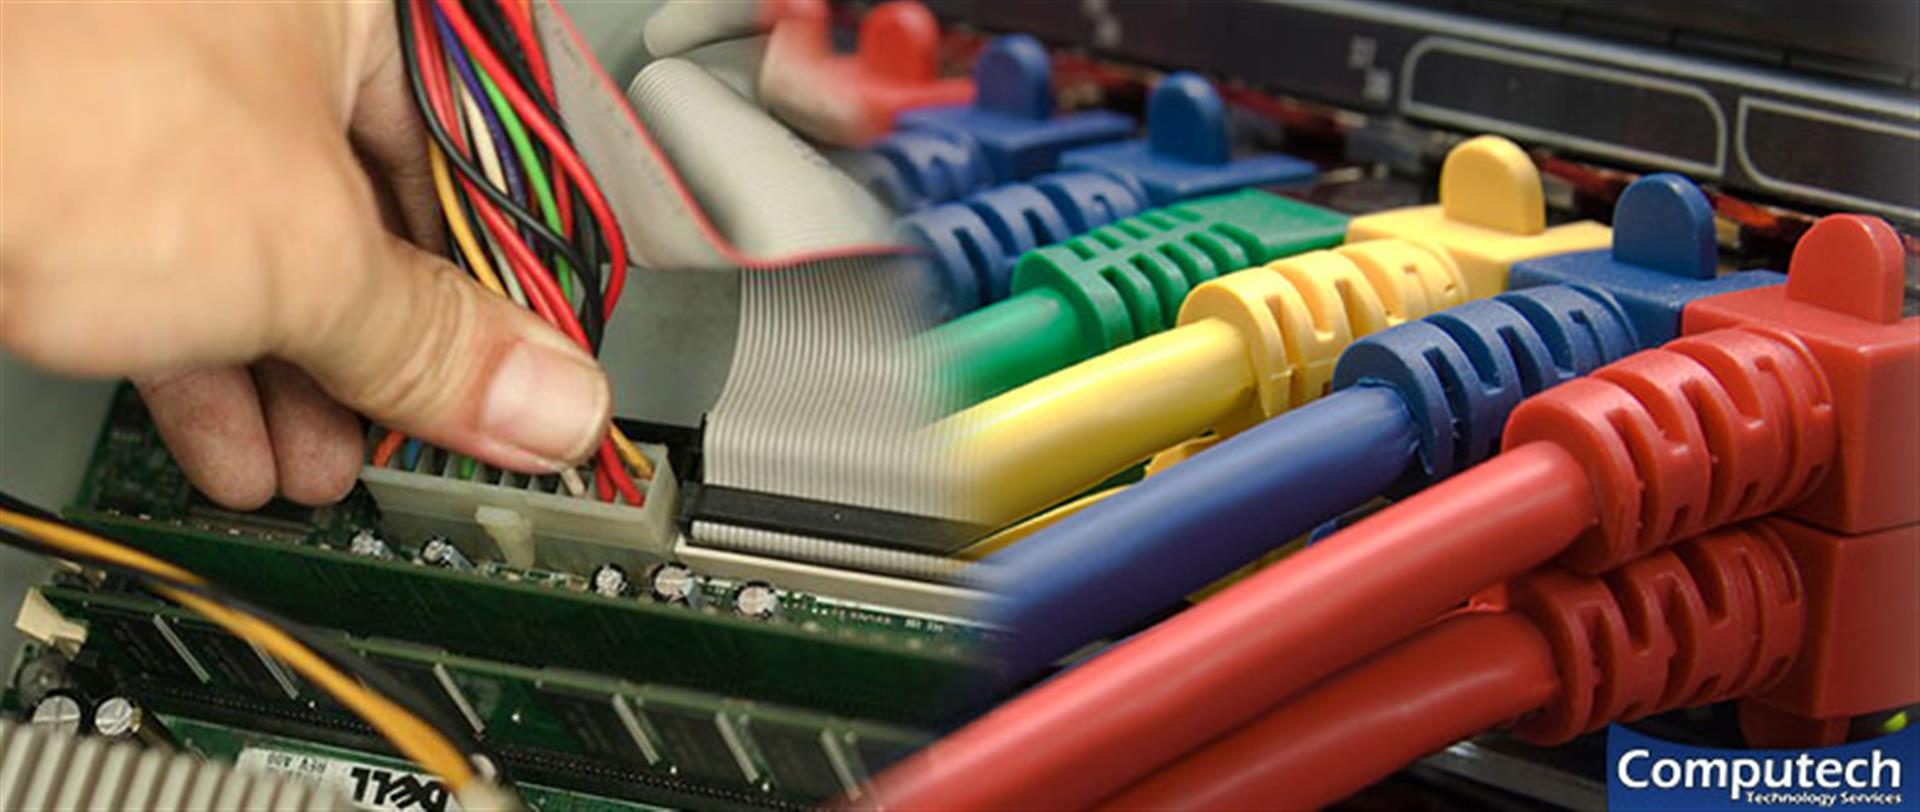 Luverne Alabama Onsite PC & Printer Repairs, Networks, Voice & Data Low Voltage Cabling Solutions